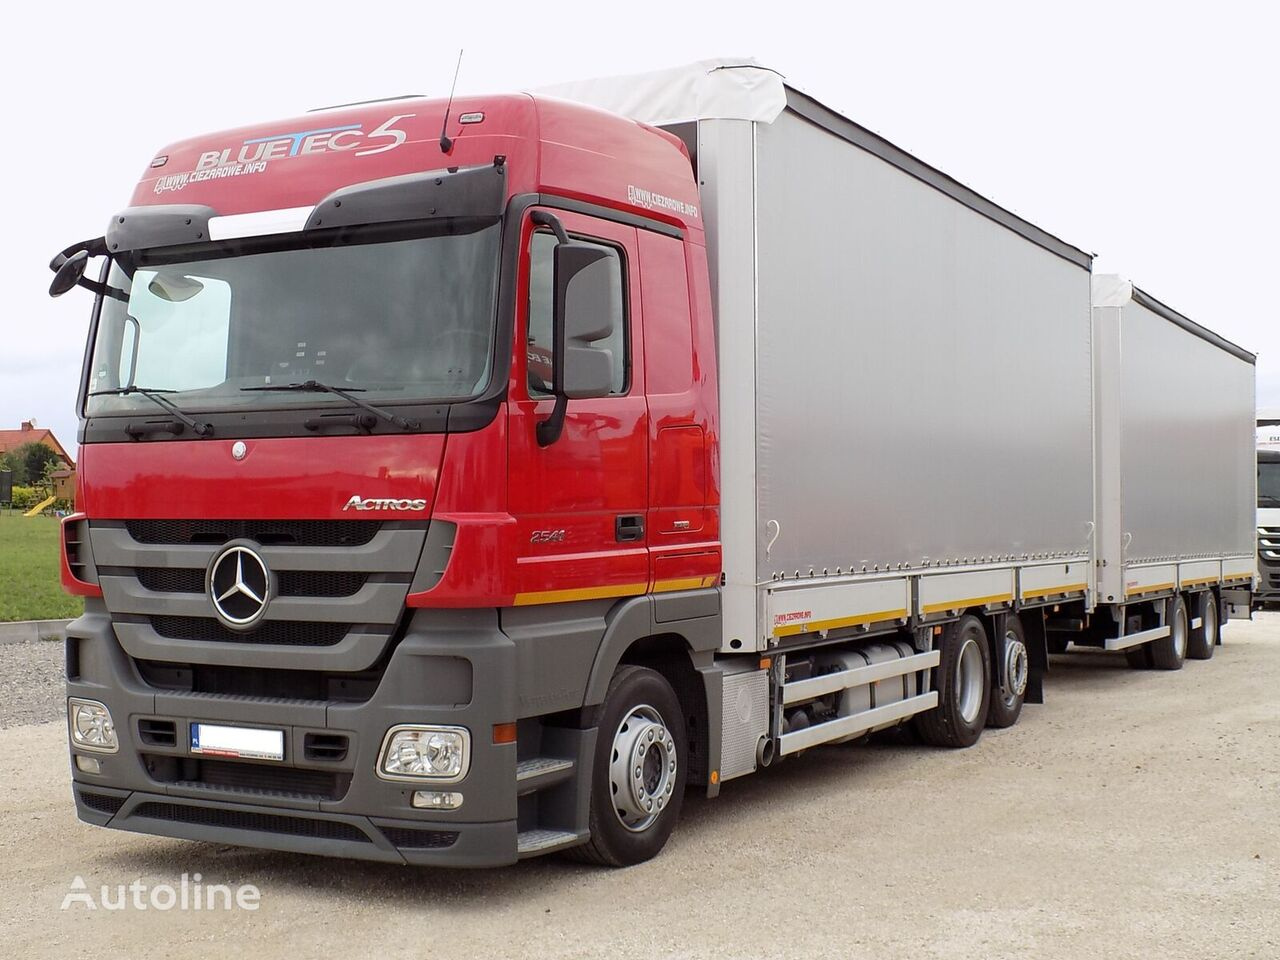 MERCEDES-BENZ ACTROS 2541 curtainsider truck + curtain side trailer